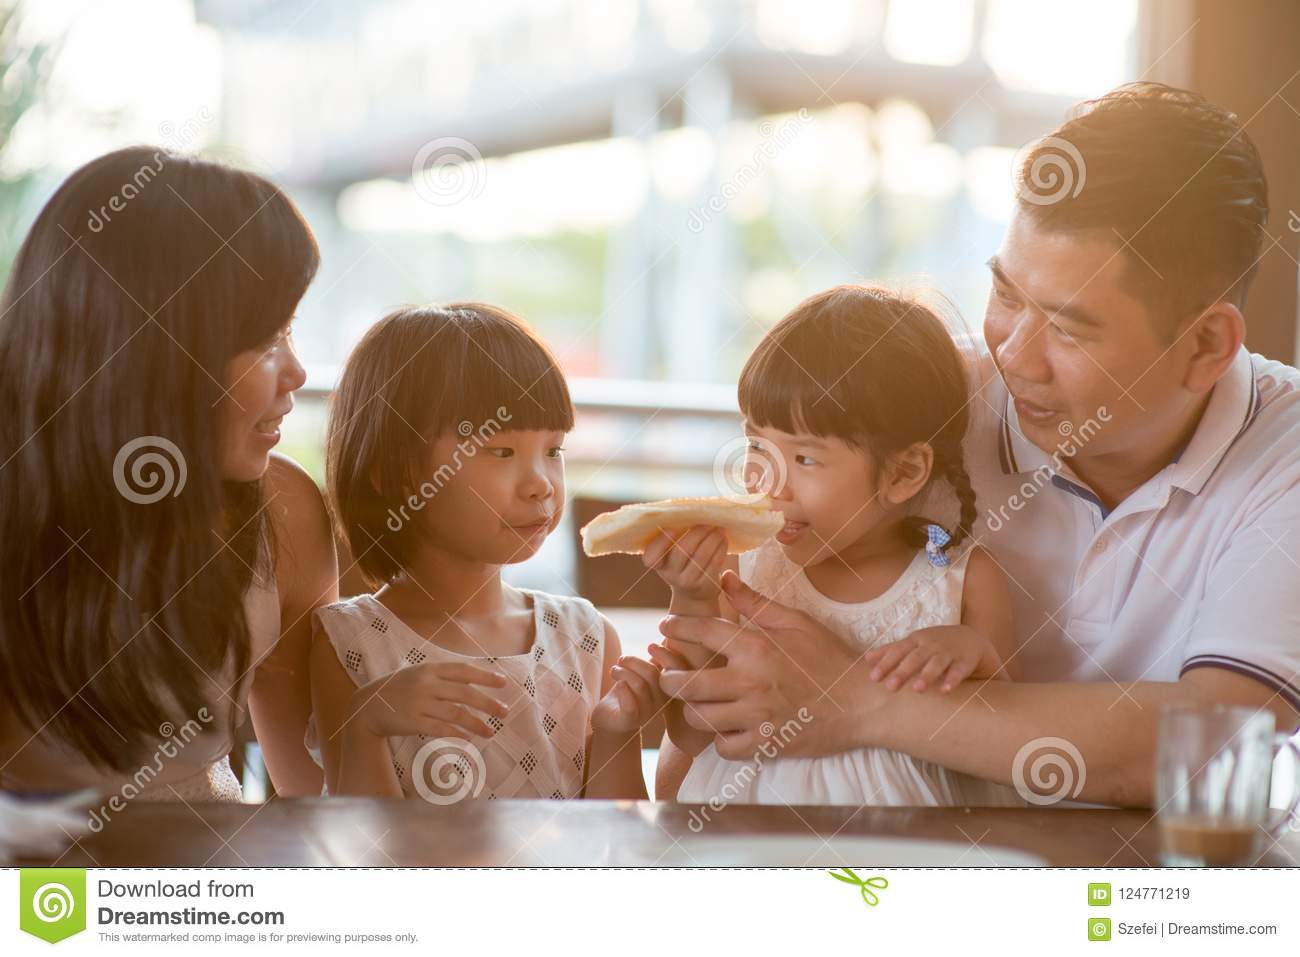 Asian family at cafe